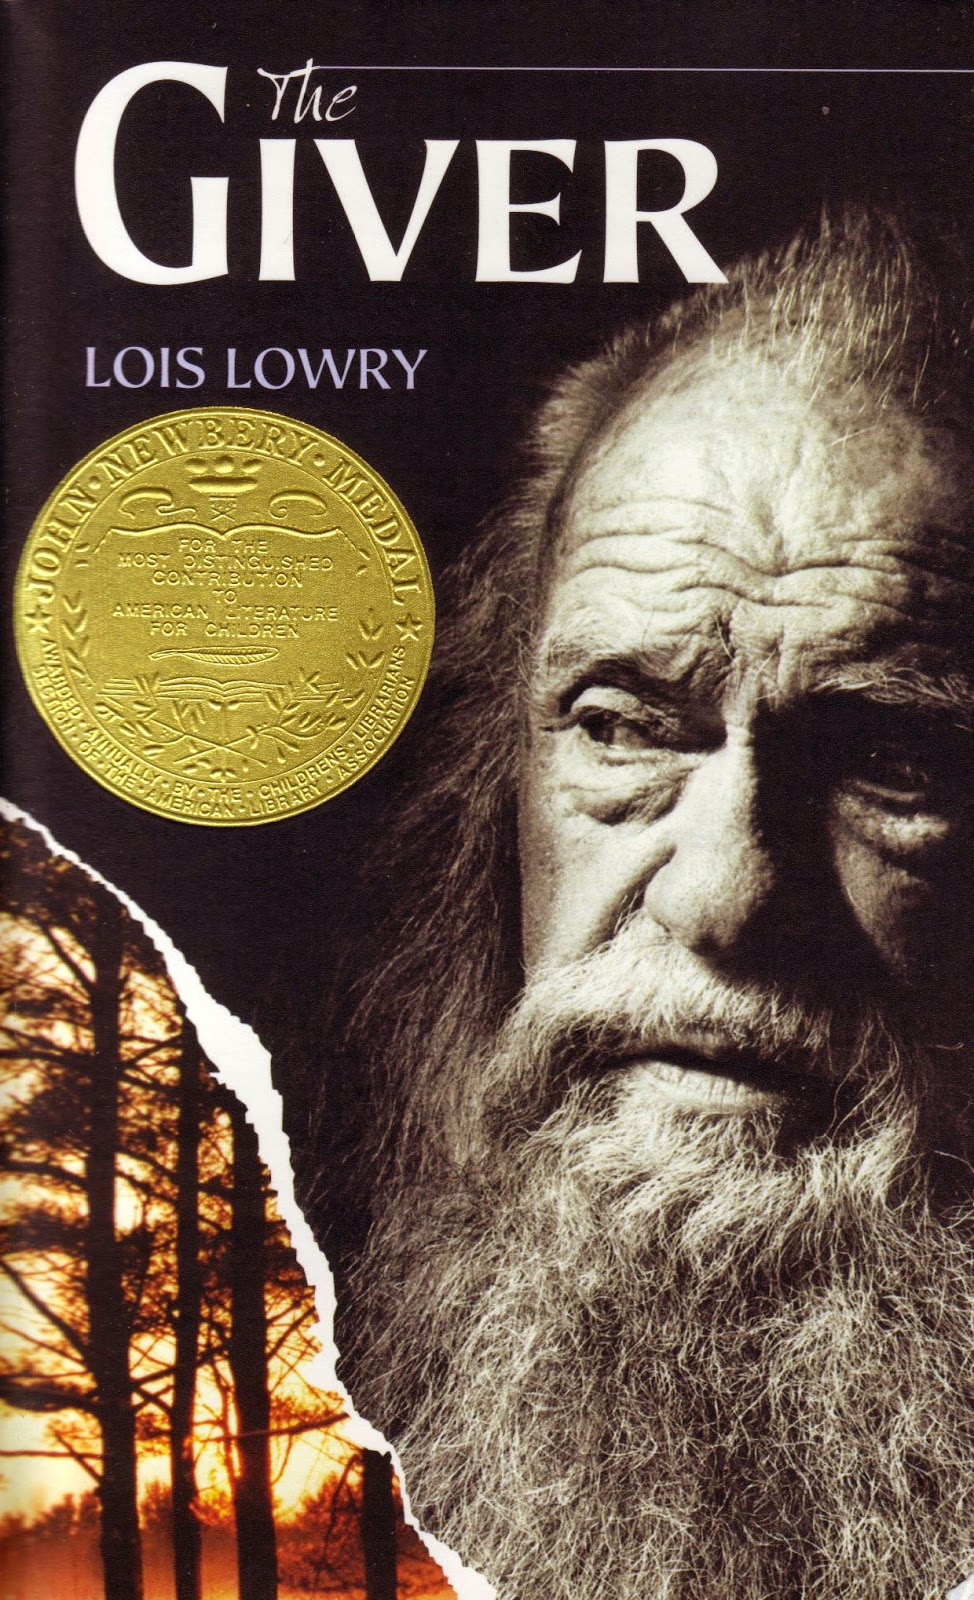 http://www.bookdepository.com/Giver-Lois-Lowry/9780440237686/?a_aid=jbblkh